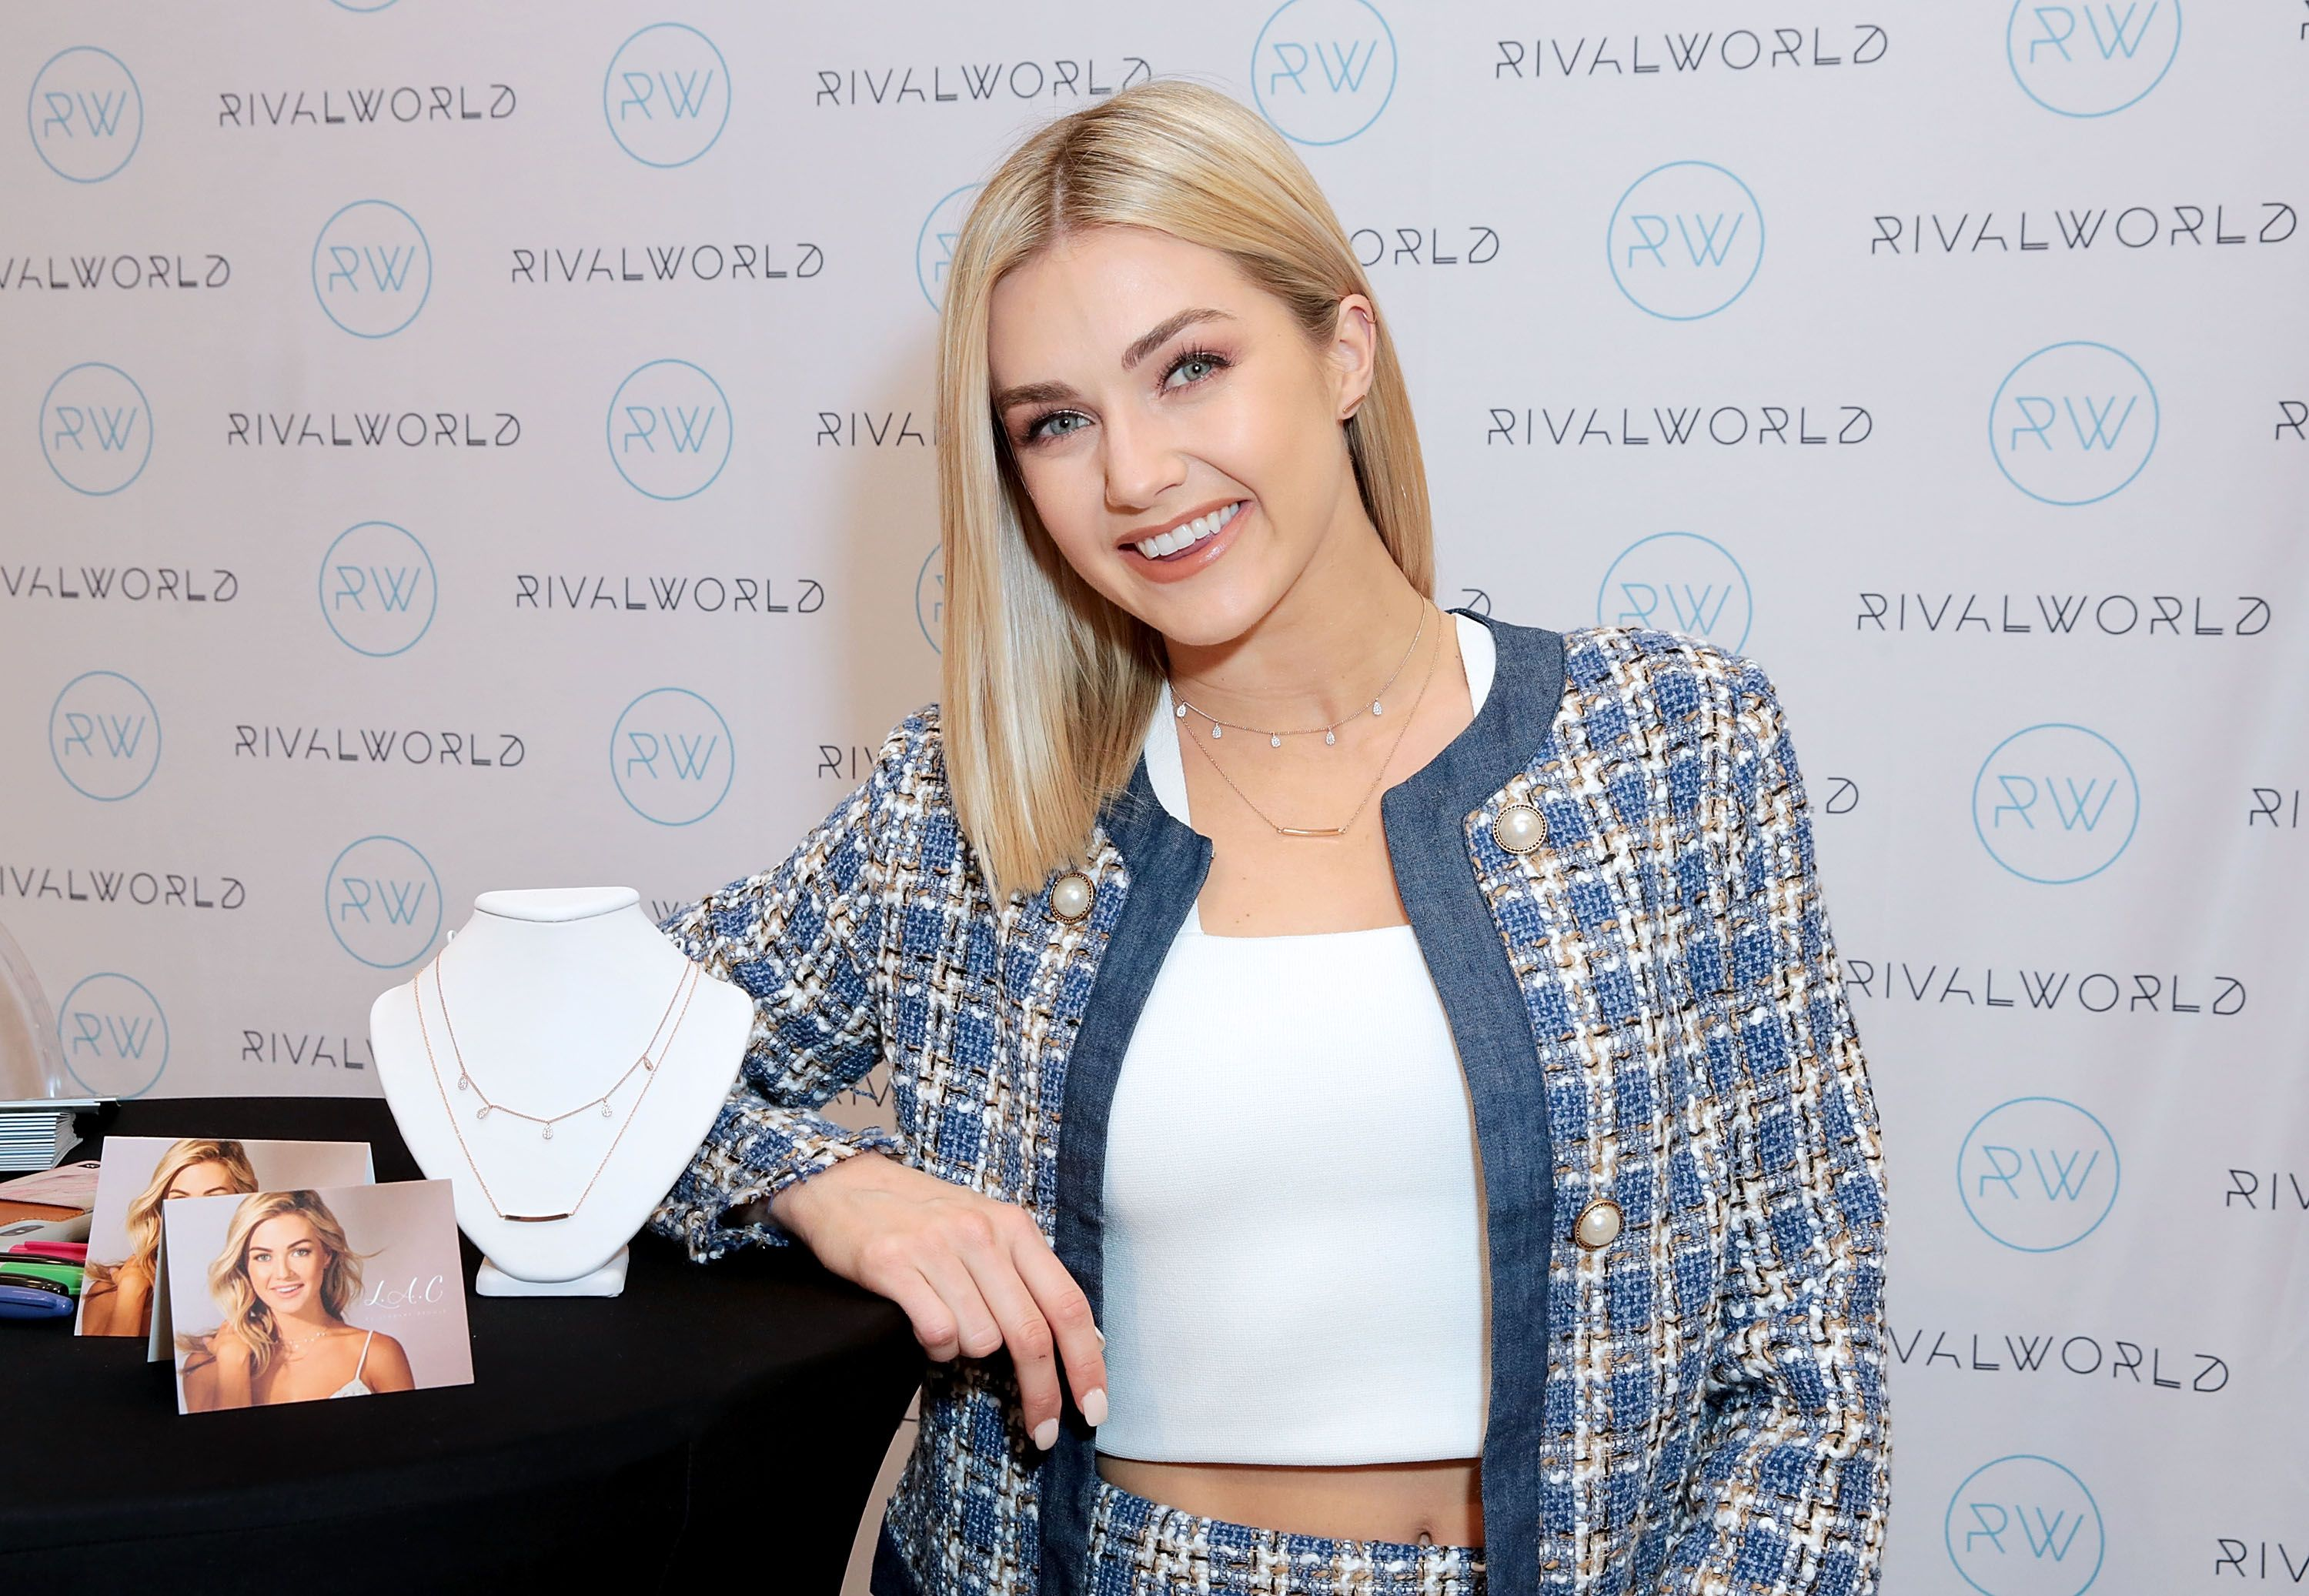 Lindsay Arnold poses with L.A.C. by Lindsay Arnold jewerly at the launch of the RivalWorld Market at Macy's Westfield Century City on February 5, 2019 | Photo: Getty Images